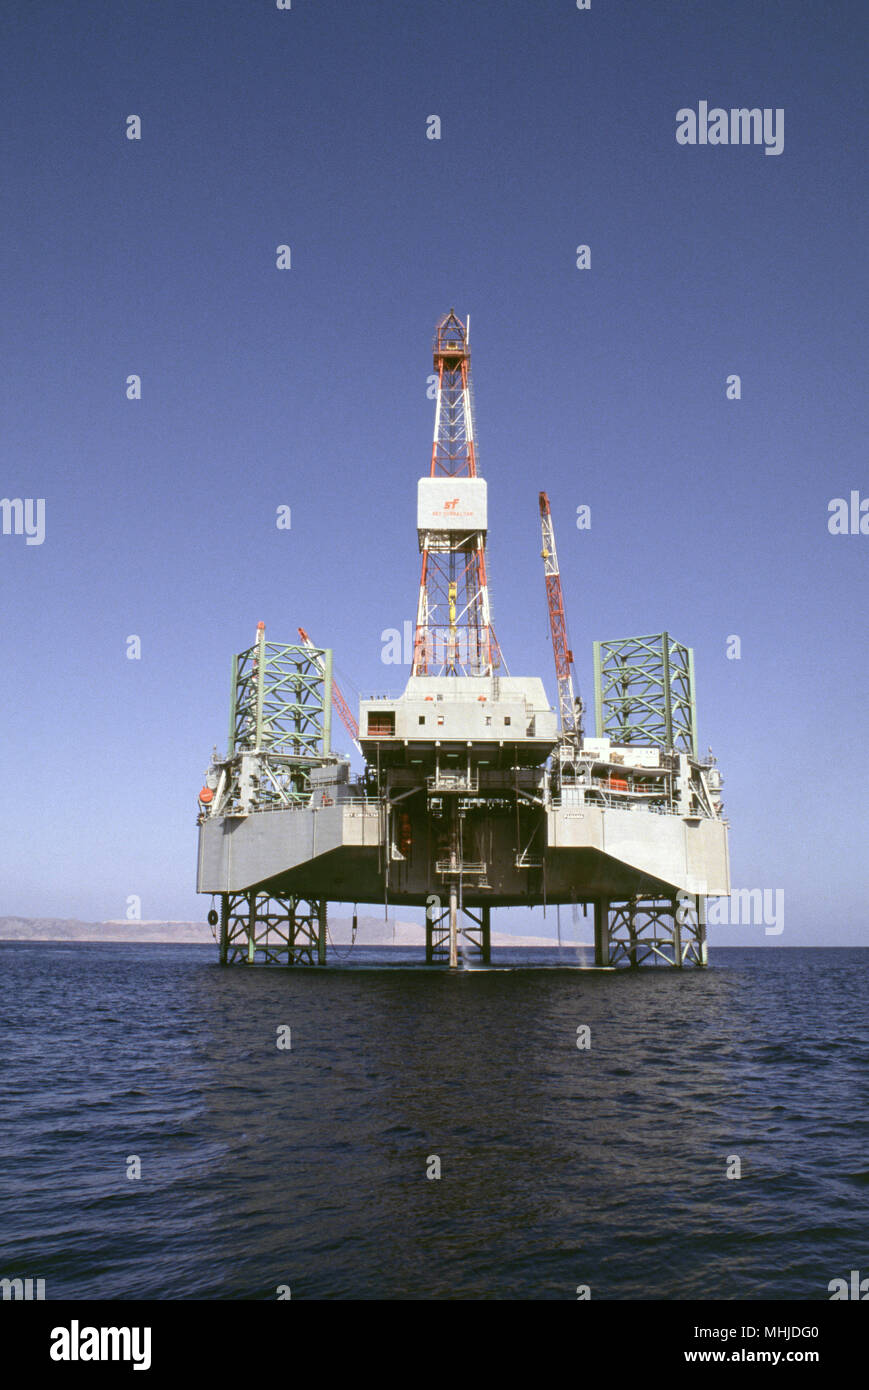 Jack-up rig Key Gibraltar drilling for oil in the Red Sea